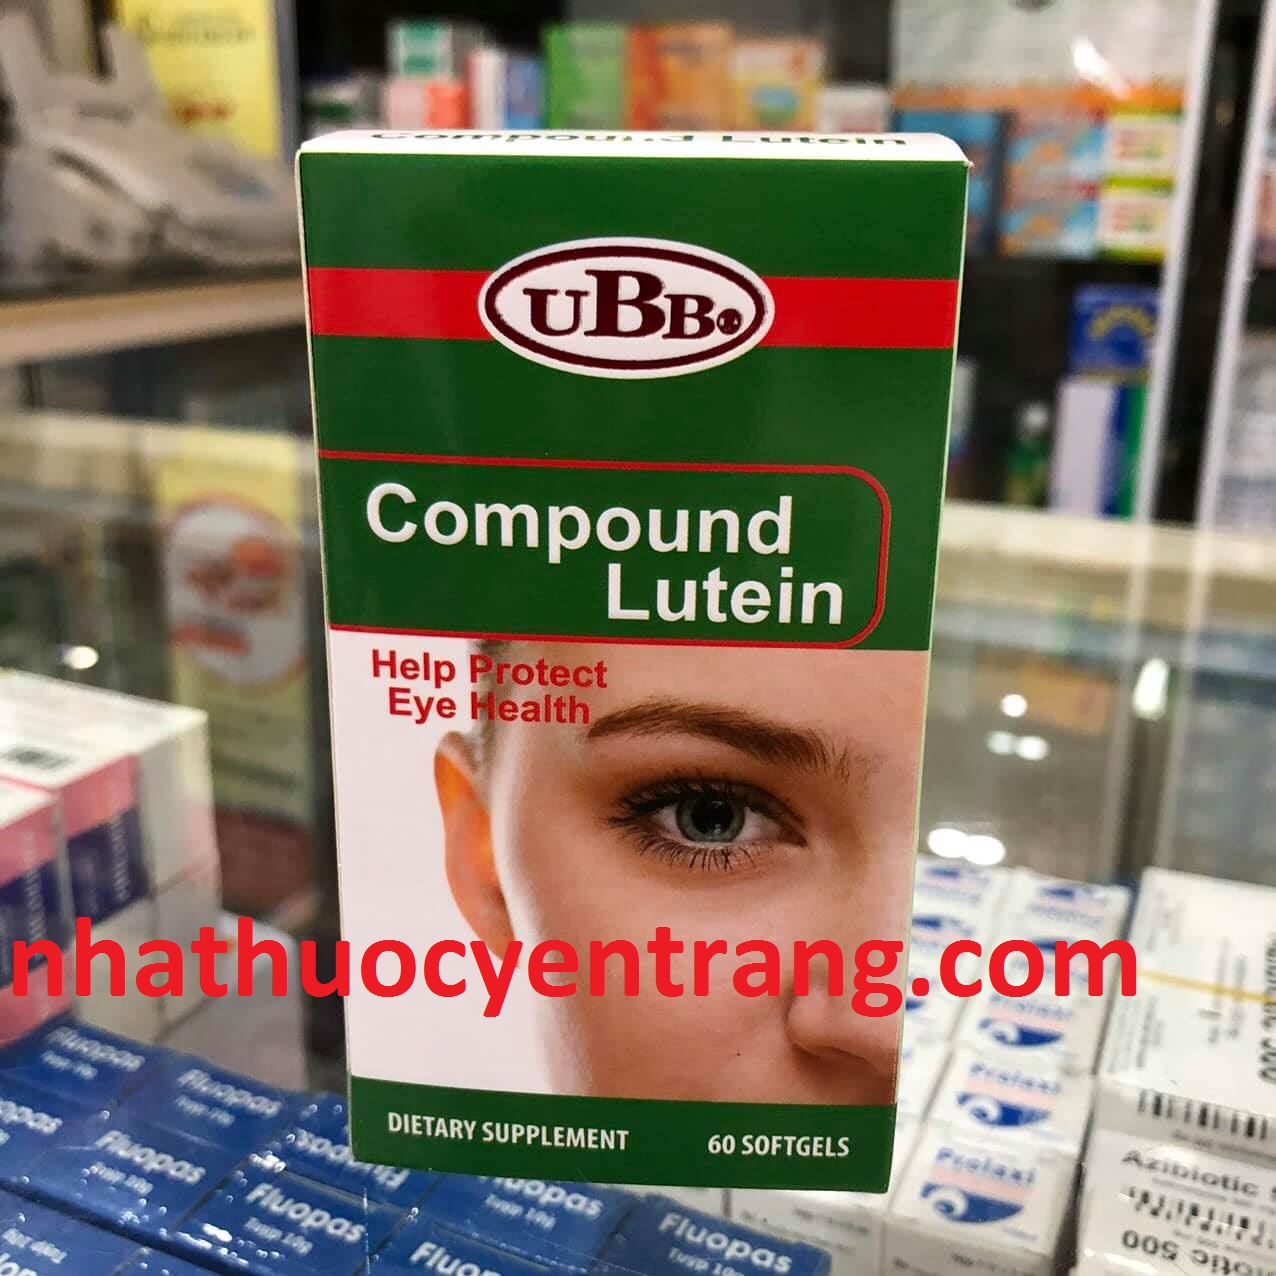 Compound Lutein